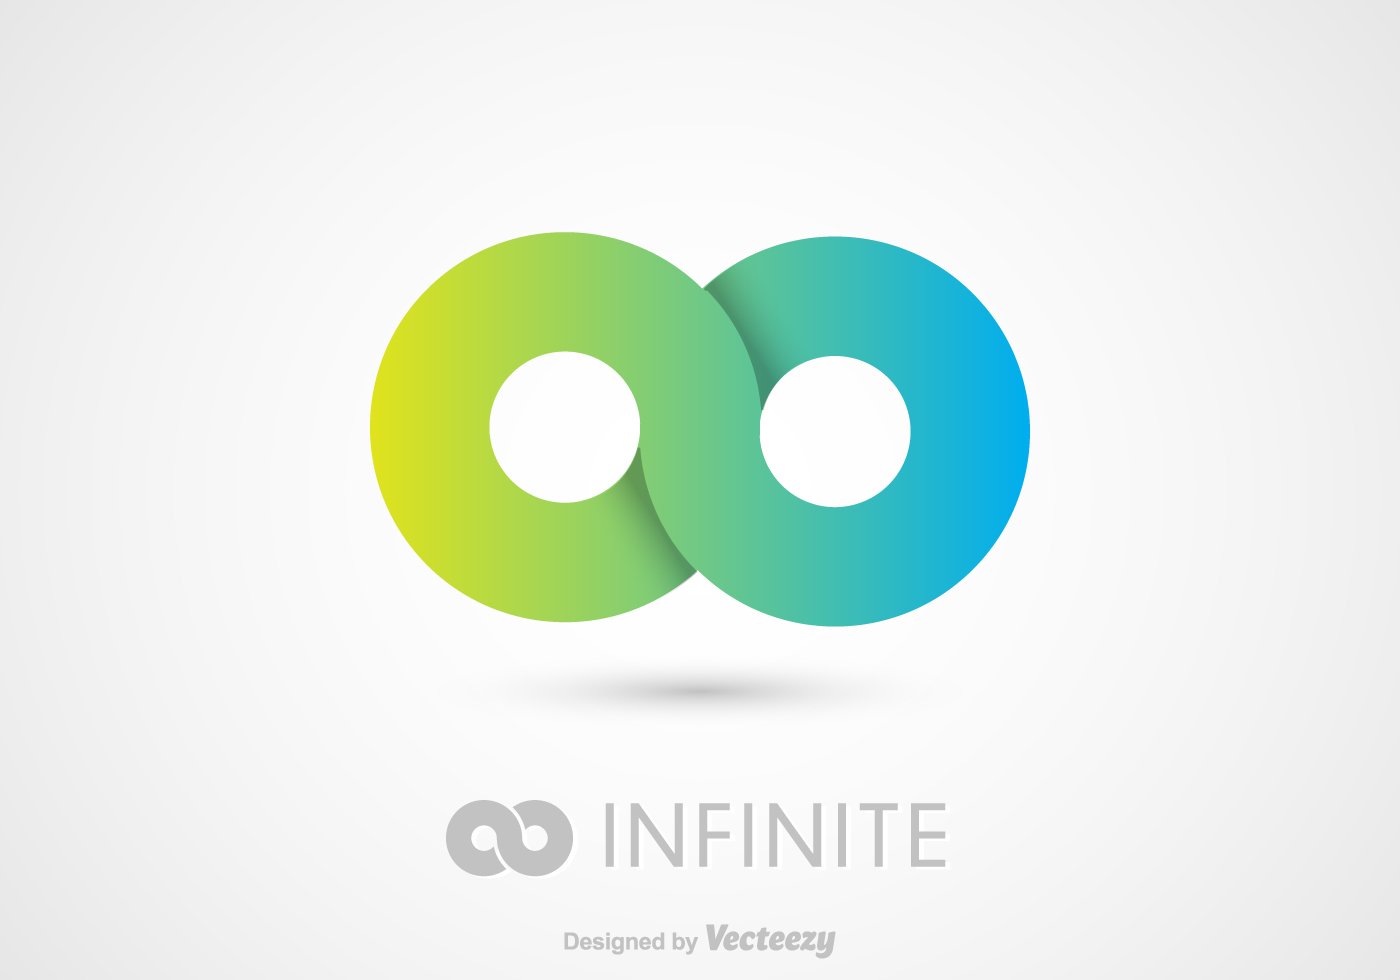 Free Infinite Vector Logo - Download Free Vector Art, Stock Graphics ...